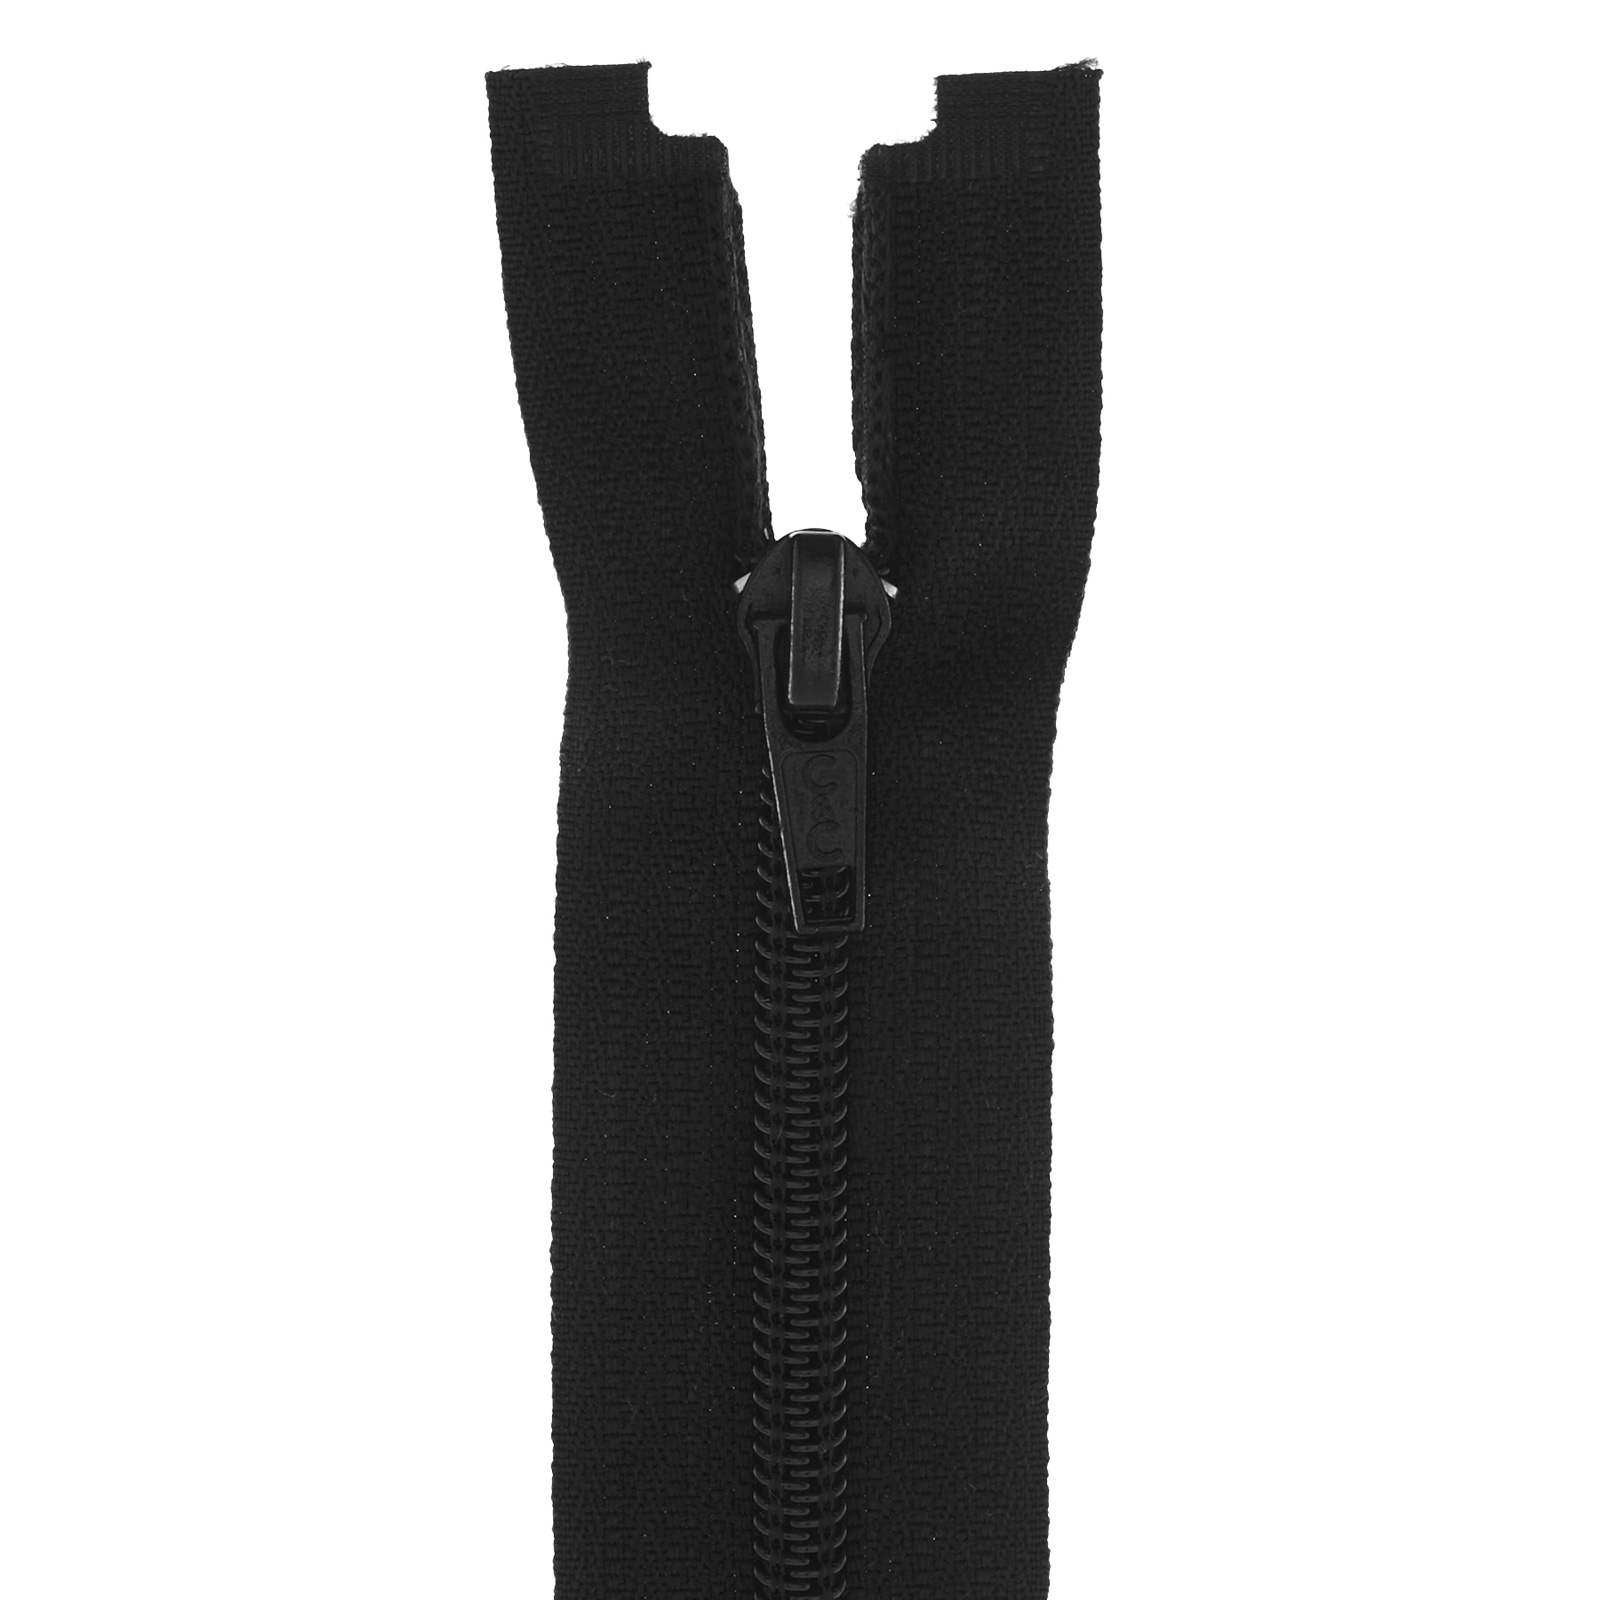 Coats & Clark Coil Separating Zipper 24'' Black